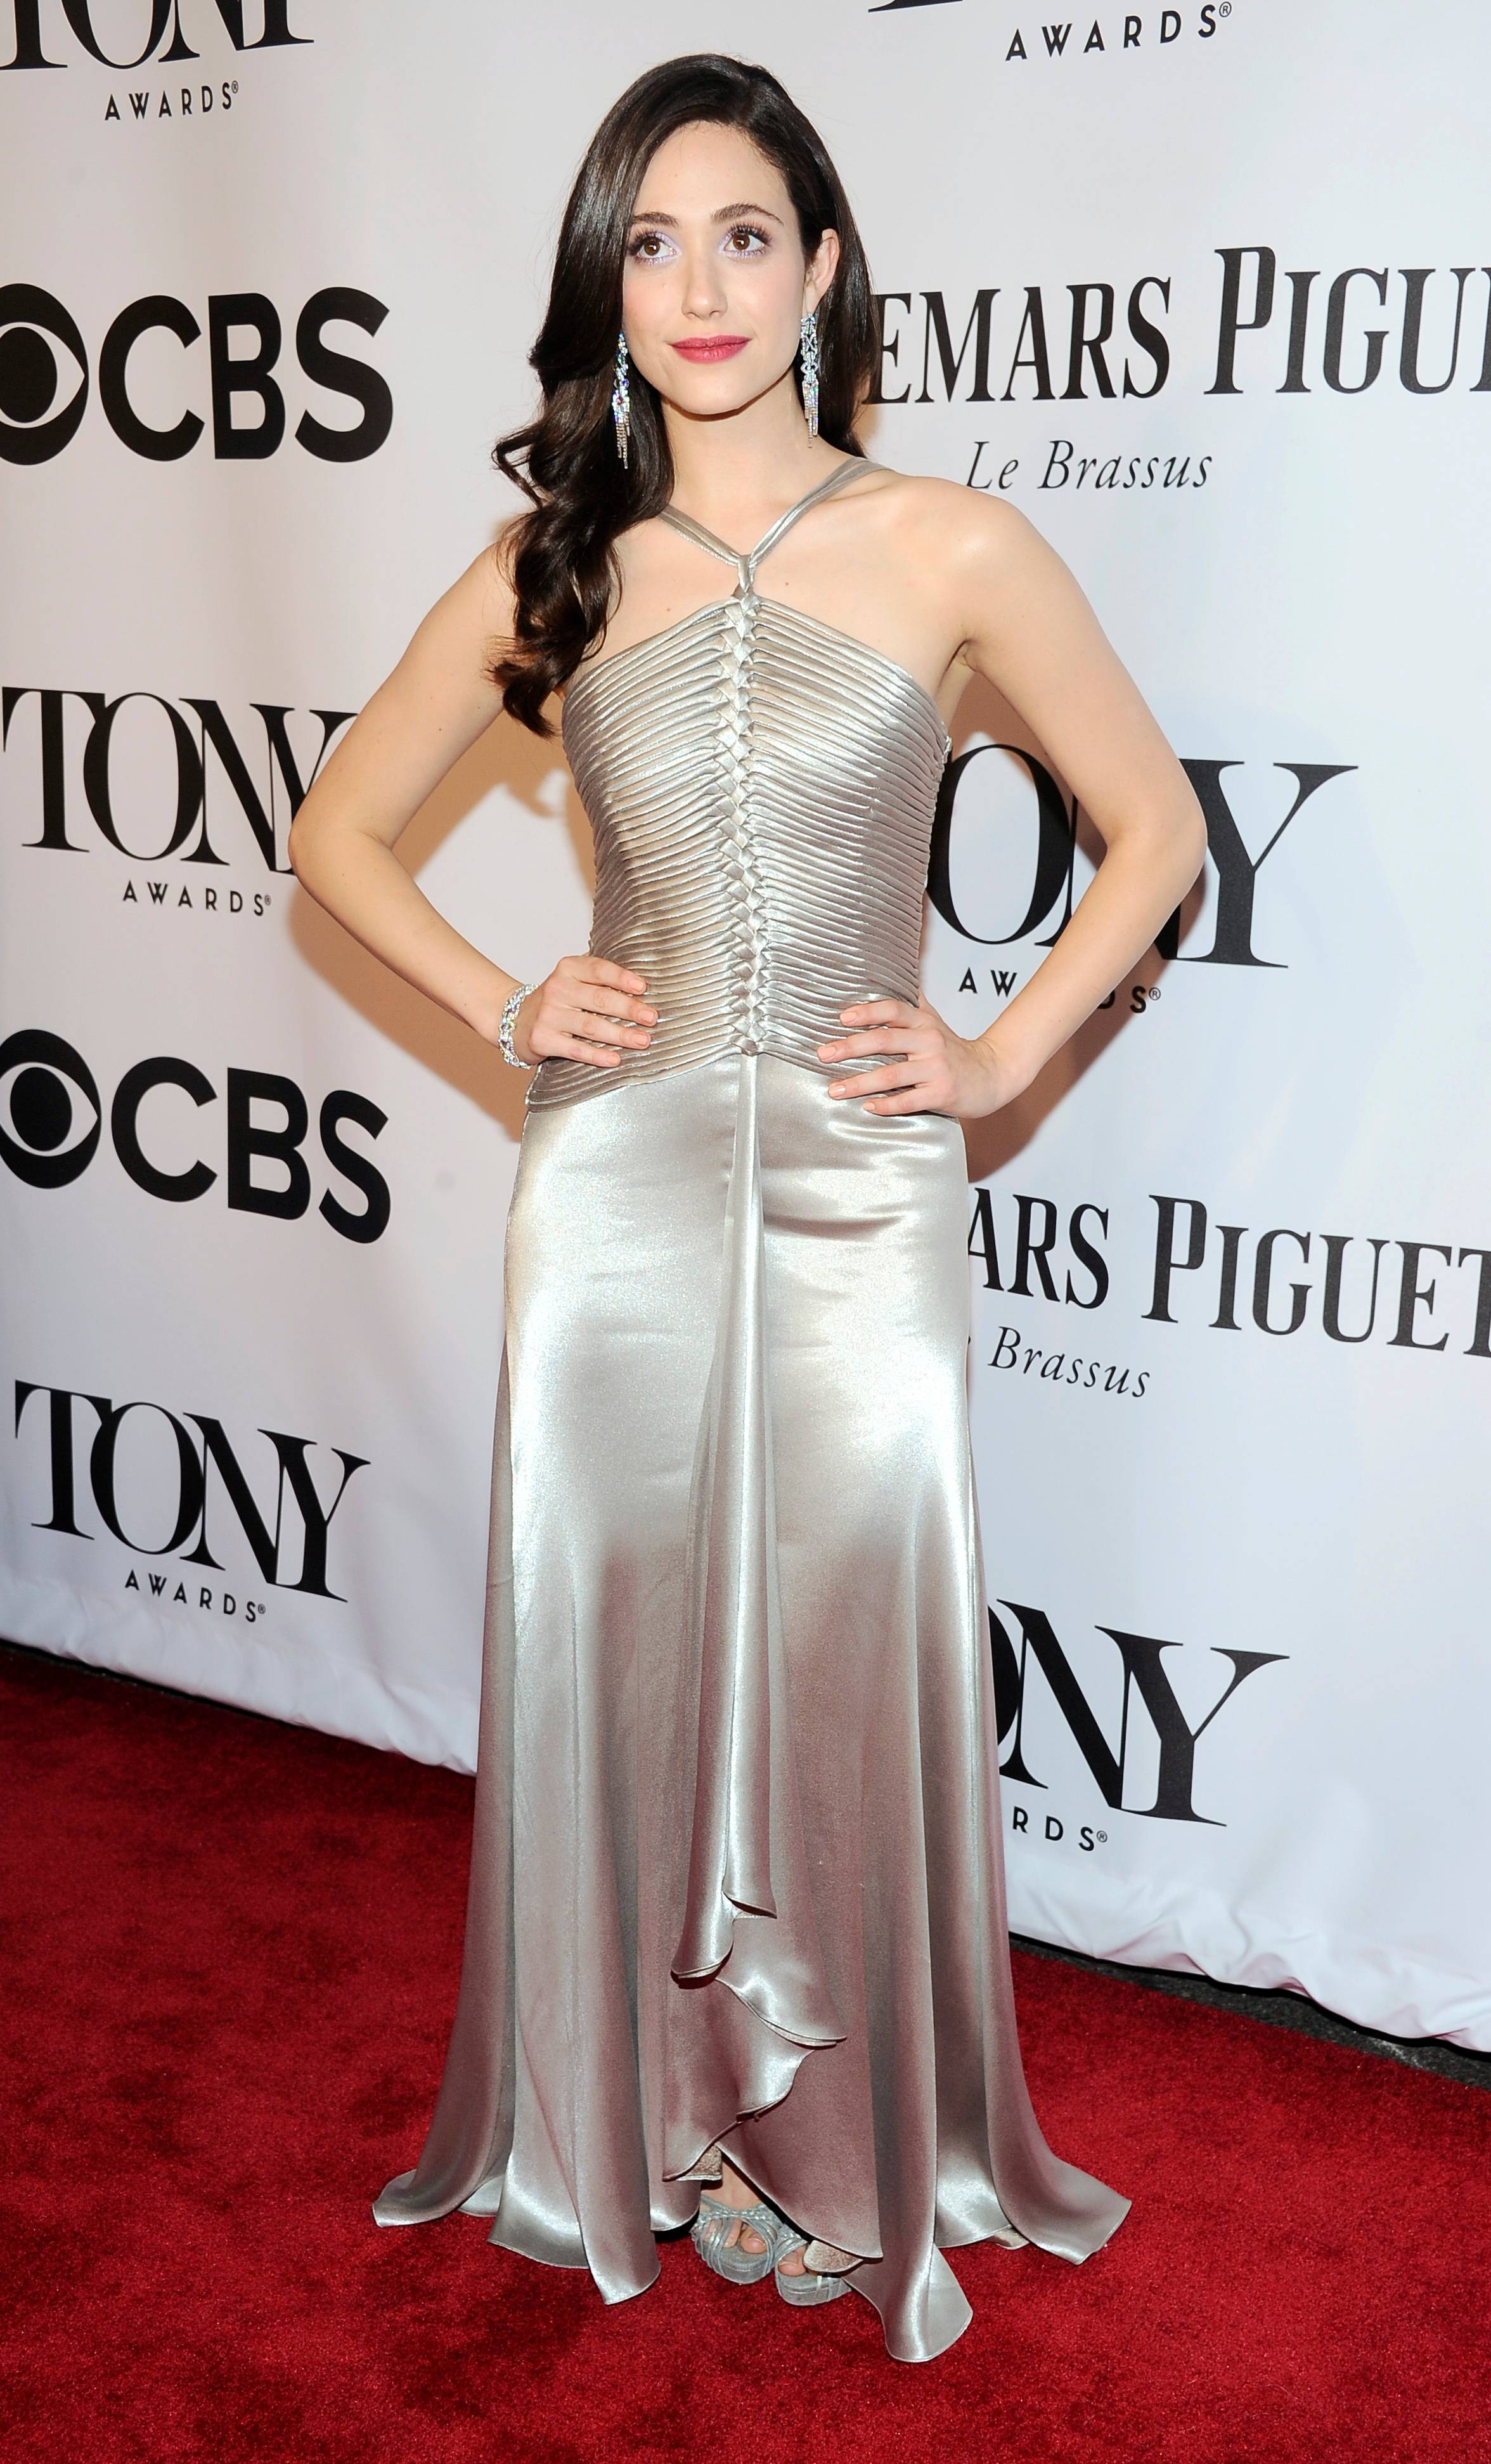 Emmy Rossum arrives at the 68th annual Tony Awards at Radio City Music Hall on Sunday, June 8, 2014, in New York.